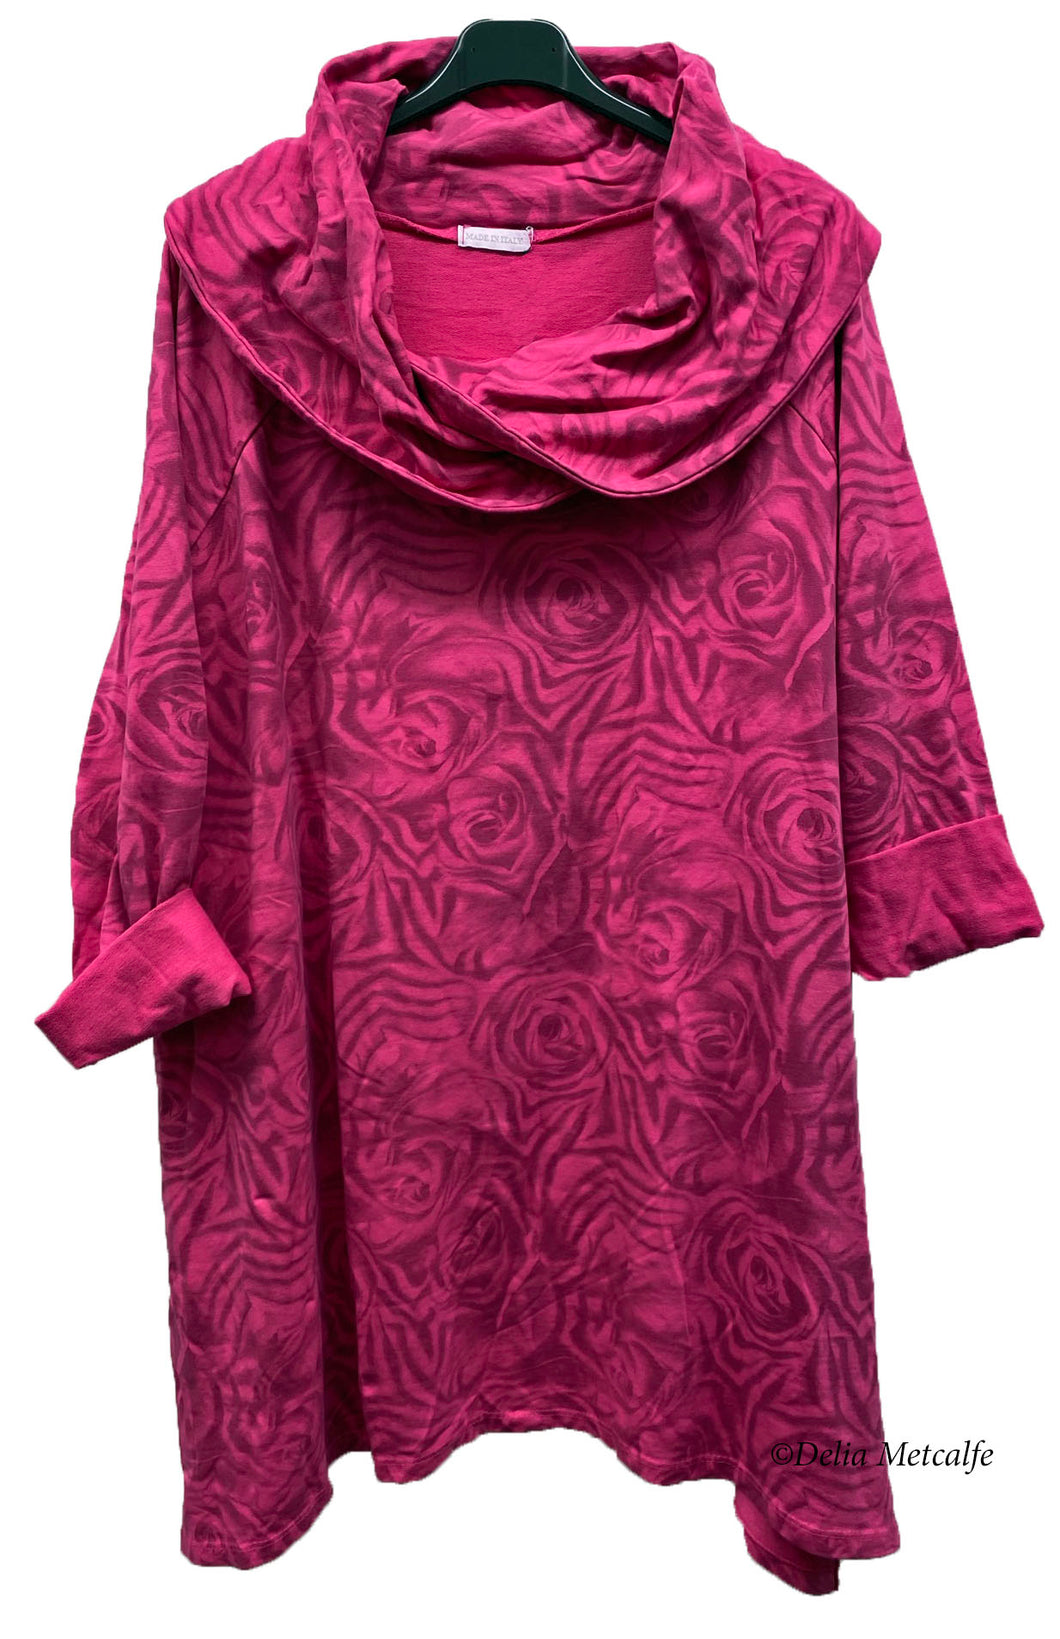 Rose Print Cowl Neck Tunic